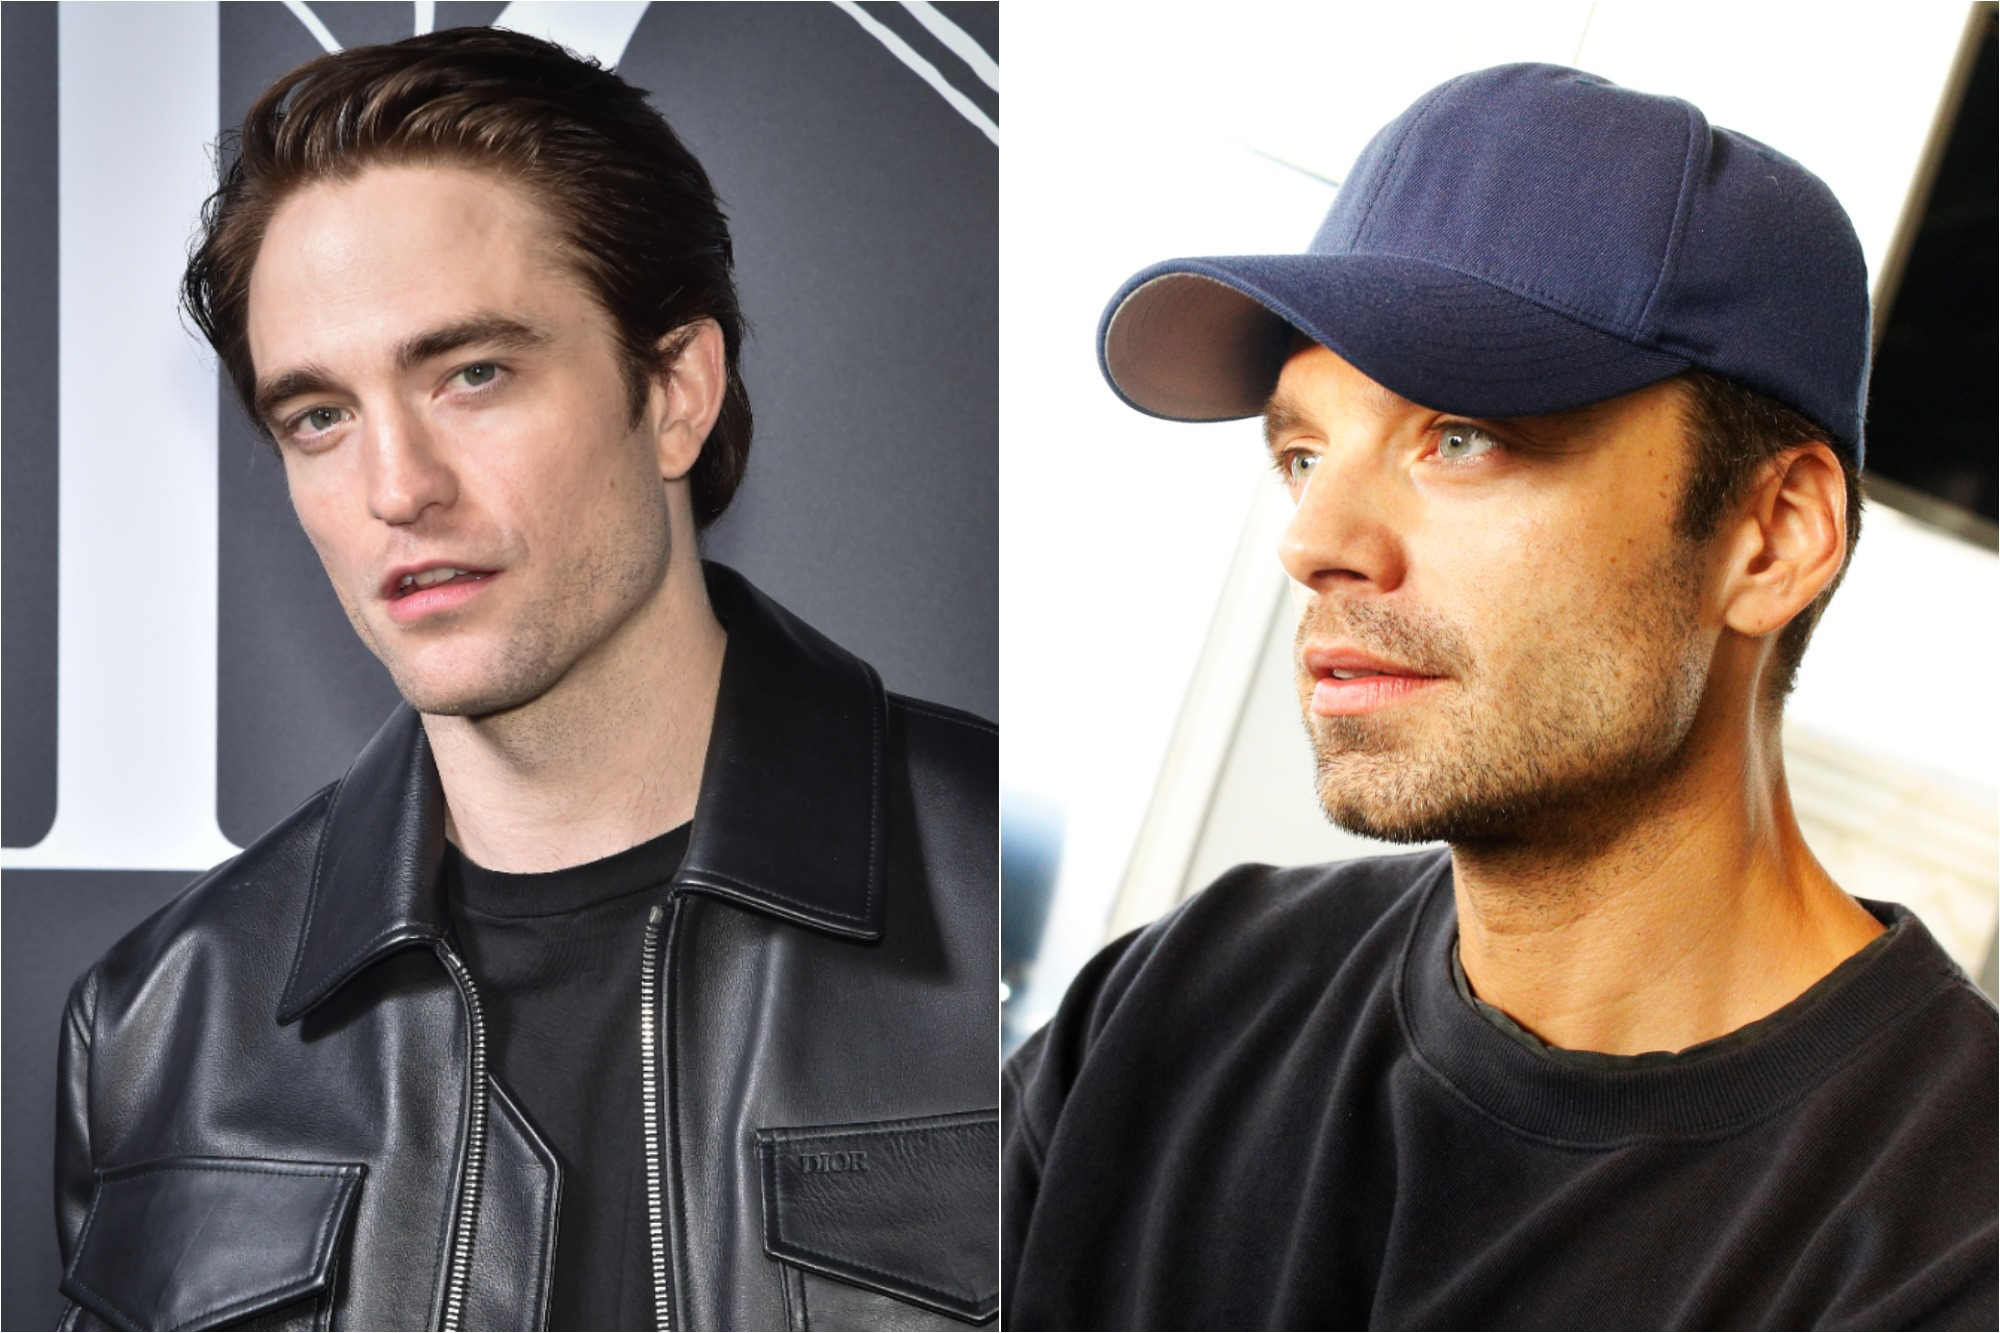 Robert Pattinson at the Dior Homme Menswear Fall/Winter 2020-2021 show, part of Paris Fashion Week on Jan. 17, 2020 / Sebastian Stan at the MDC Productions' 3rd Annual Face Off to Fight Cancer at the Sky Rink at Chelsea Piers on Oct. 27, 2019.